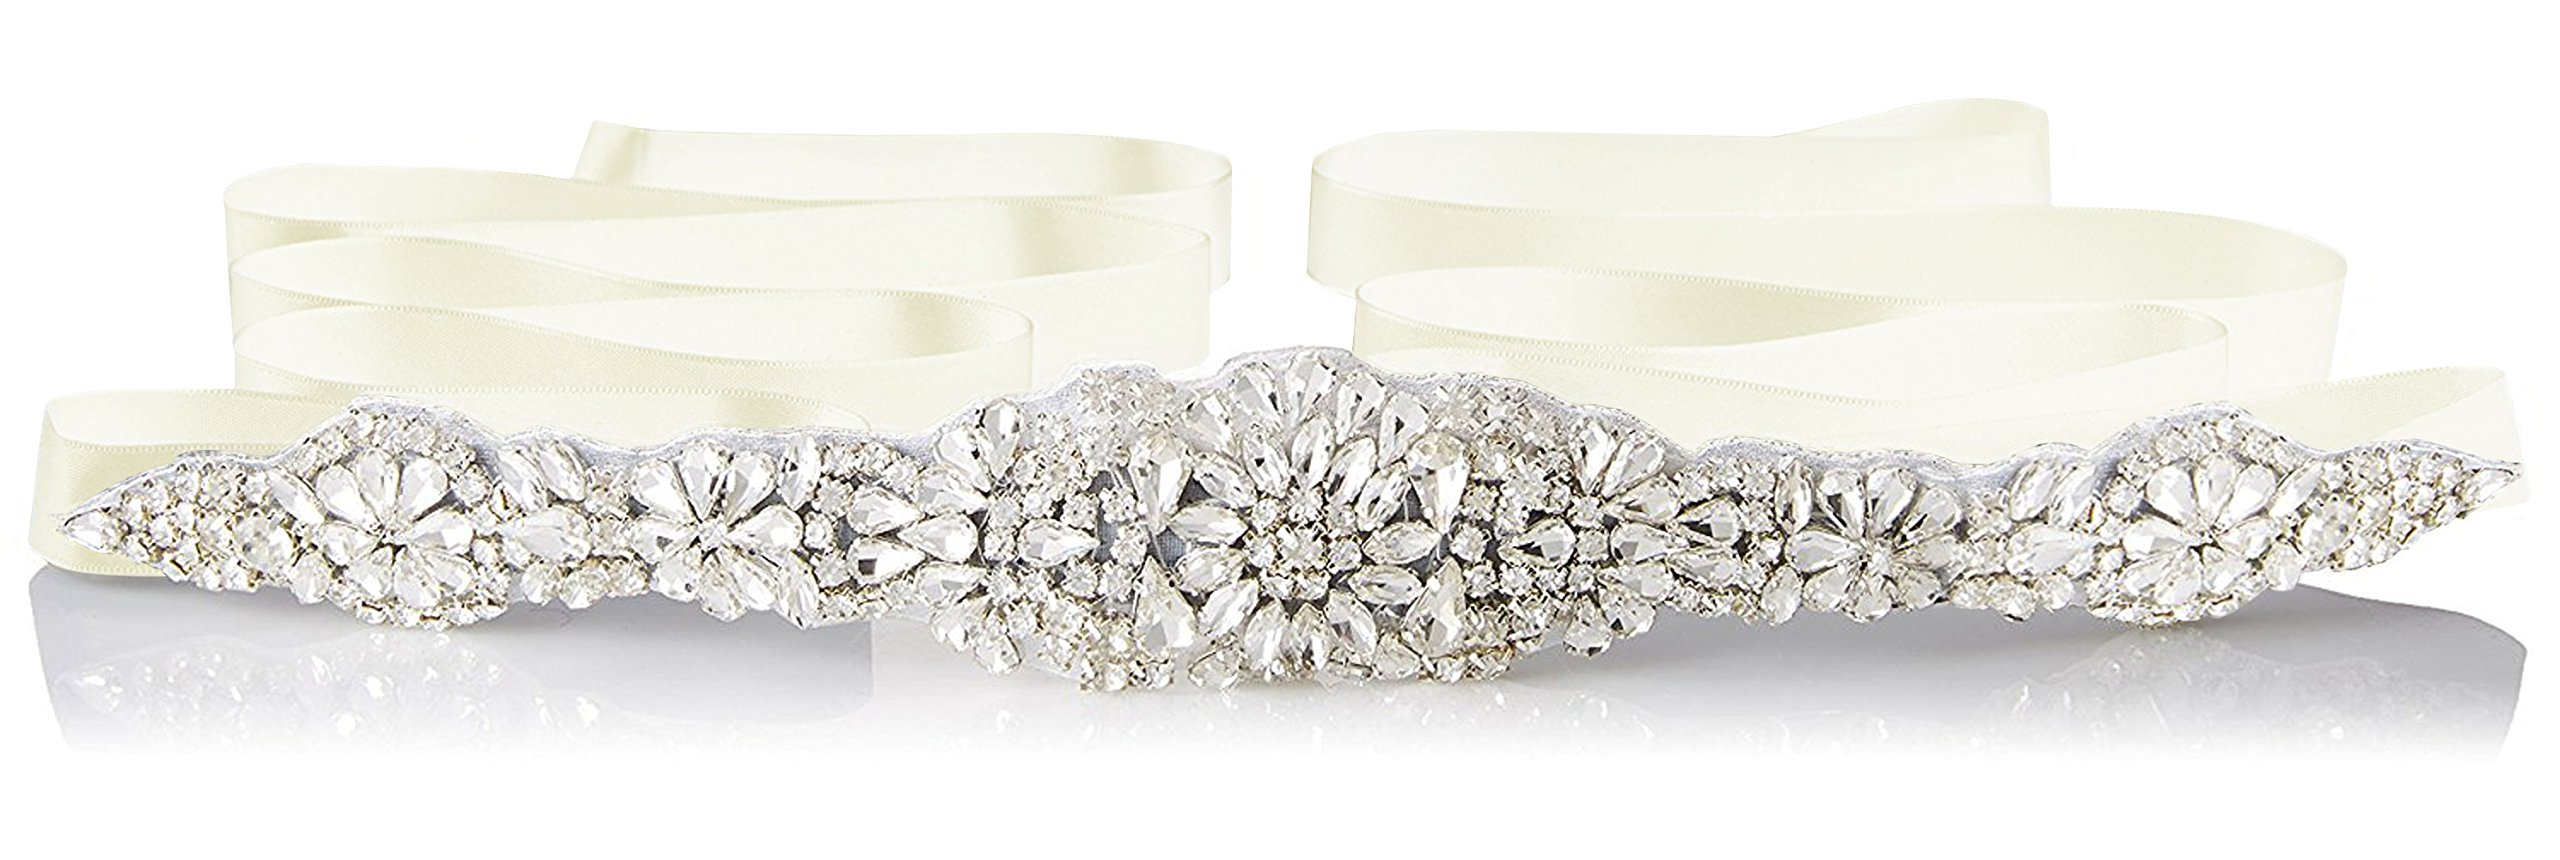 E-Clover Bridal Crystal Rhinestone Wedding Dress Sash Belt With Ribbon (Ivory)